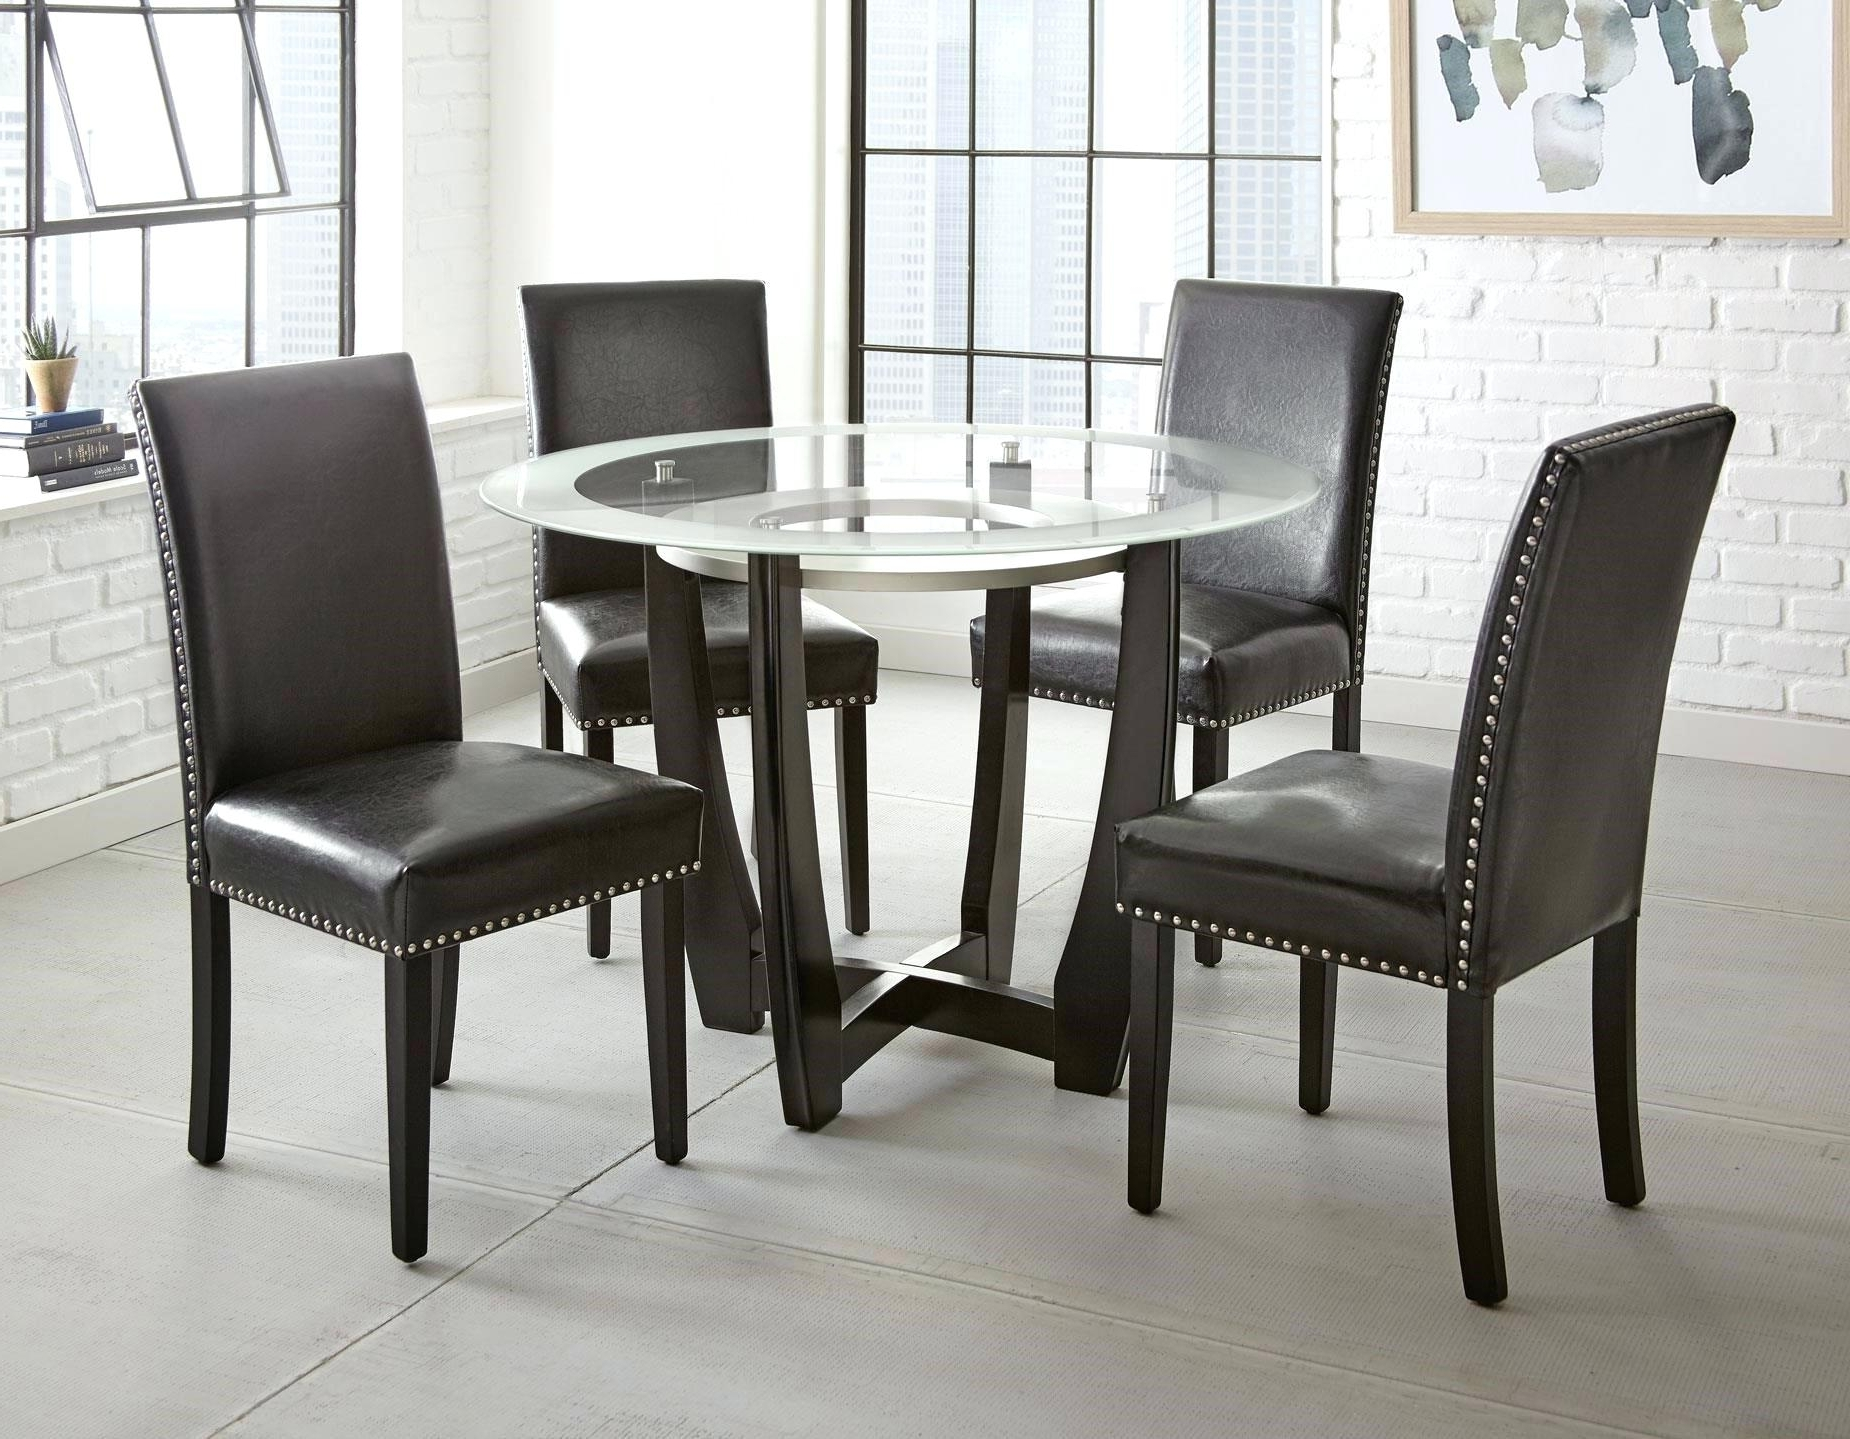 Fashionable 5 Piece Dining Sets Kmart Cora Set Table With Bench Jaclyn Smith With Regard To Cora 5 Piece Dining Sets (View 15 of 25)